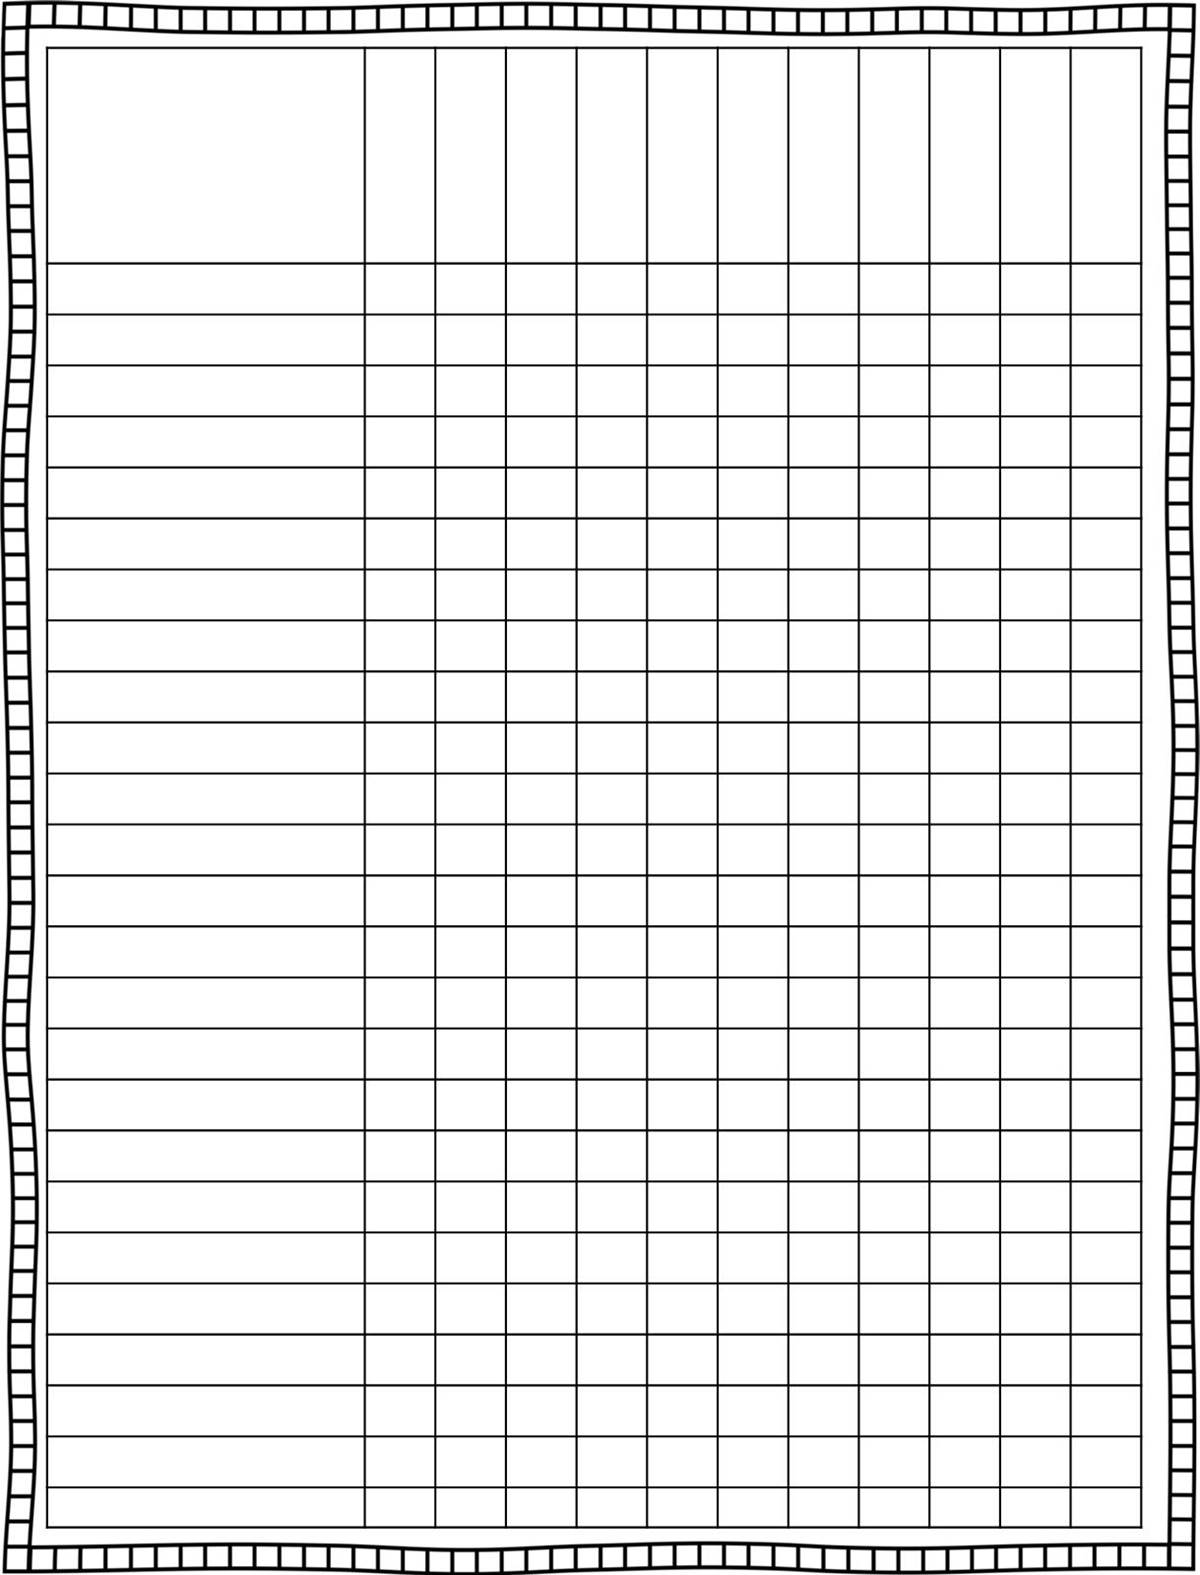 Class+Grade+Sheets Printable Blank Roster Sheets Baseball 1275 · 1650